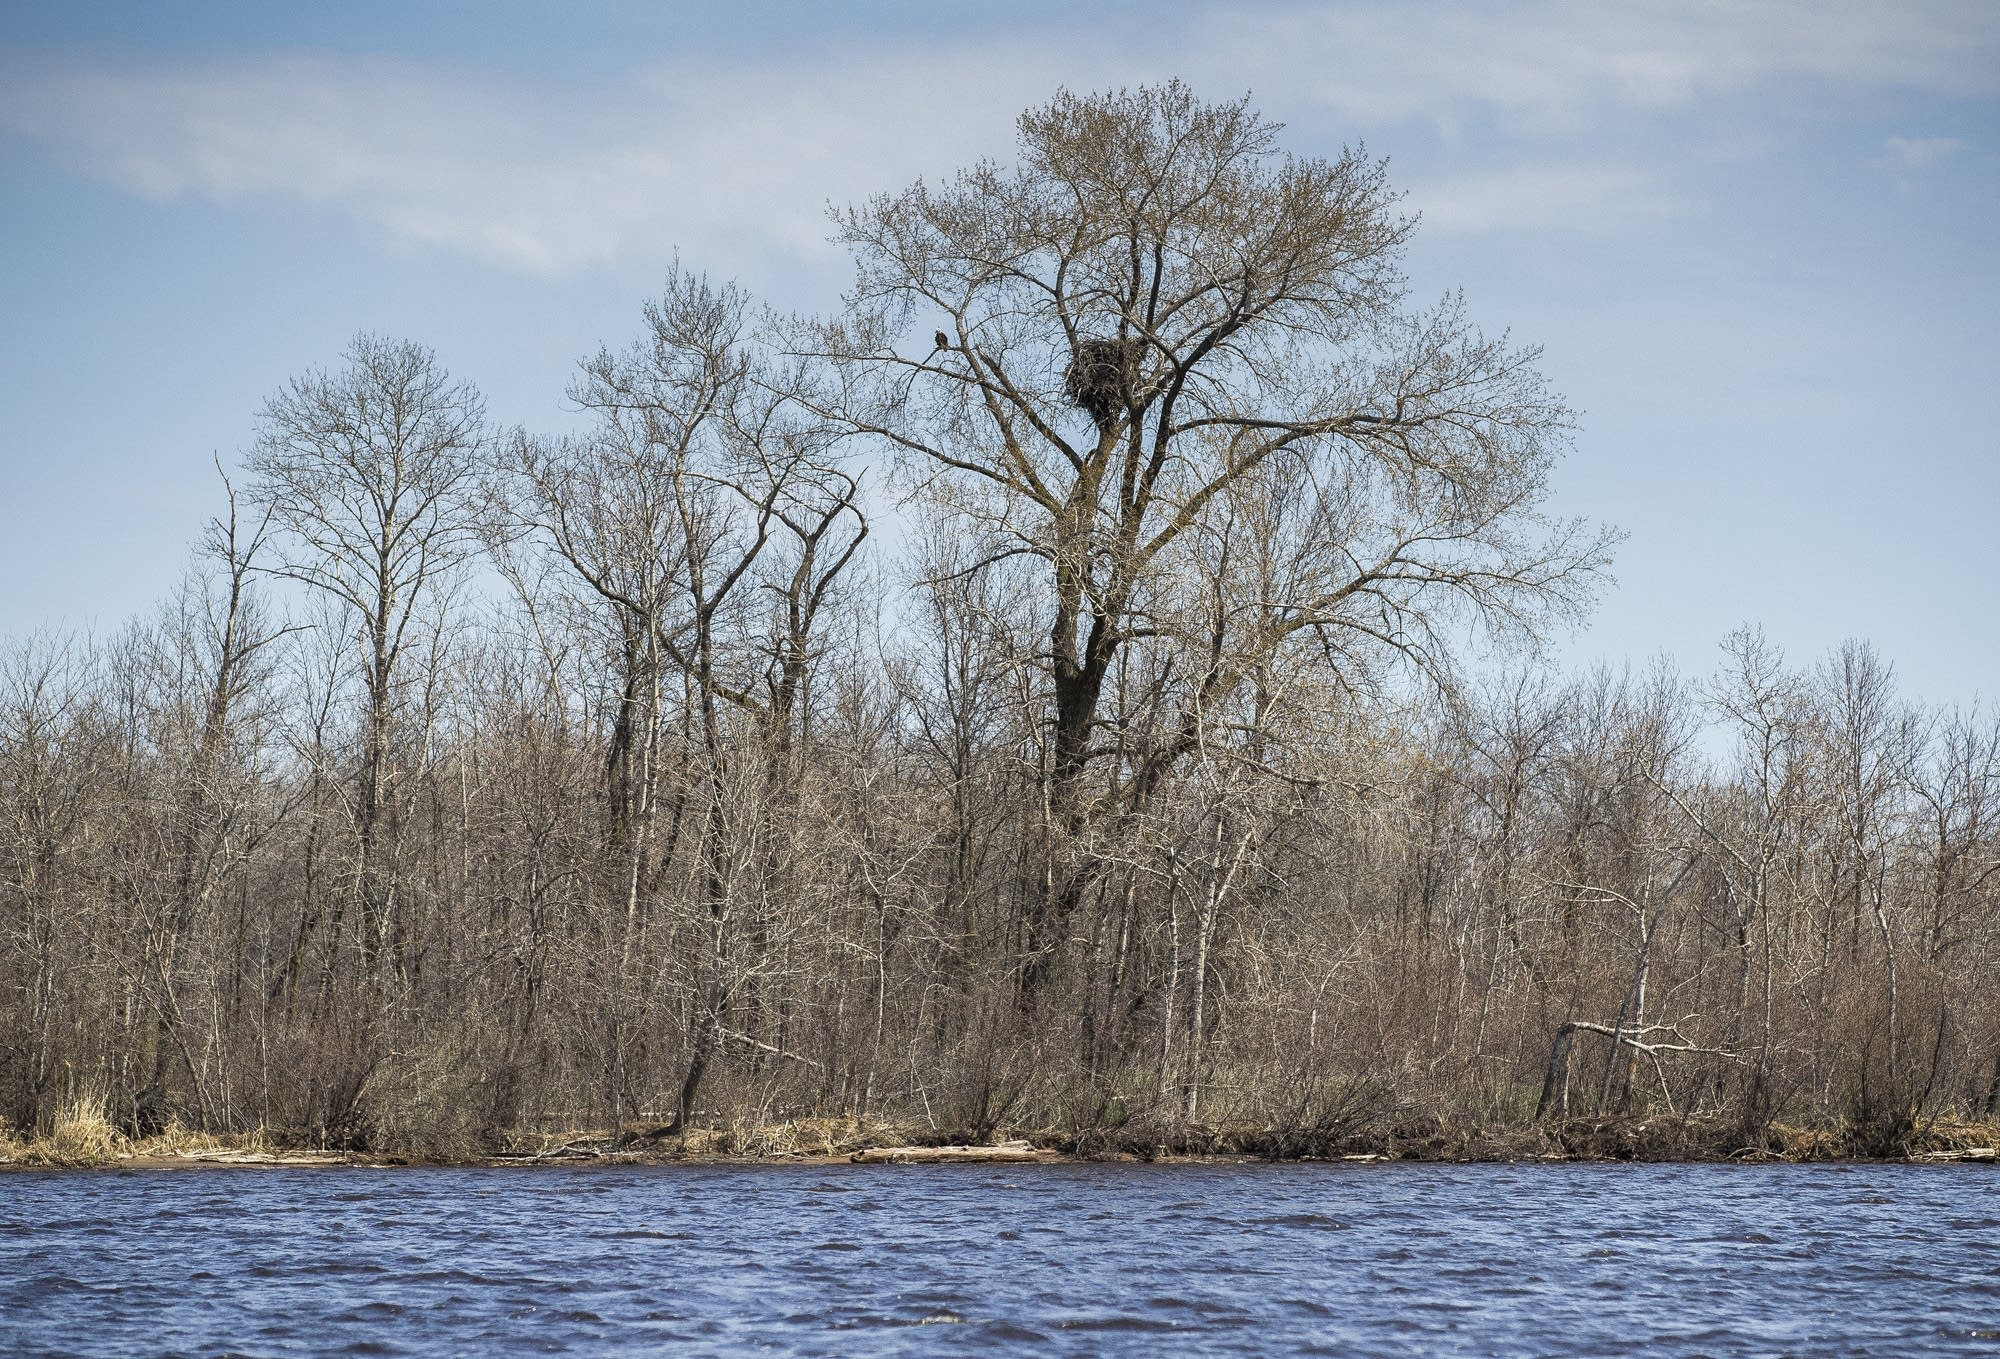 A bald eagle nests in a tree on an island in the St. Louis River.